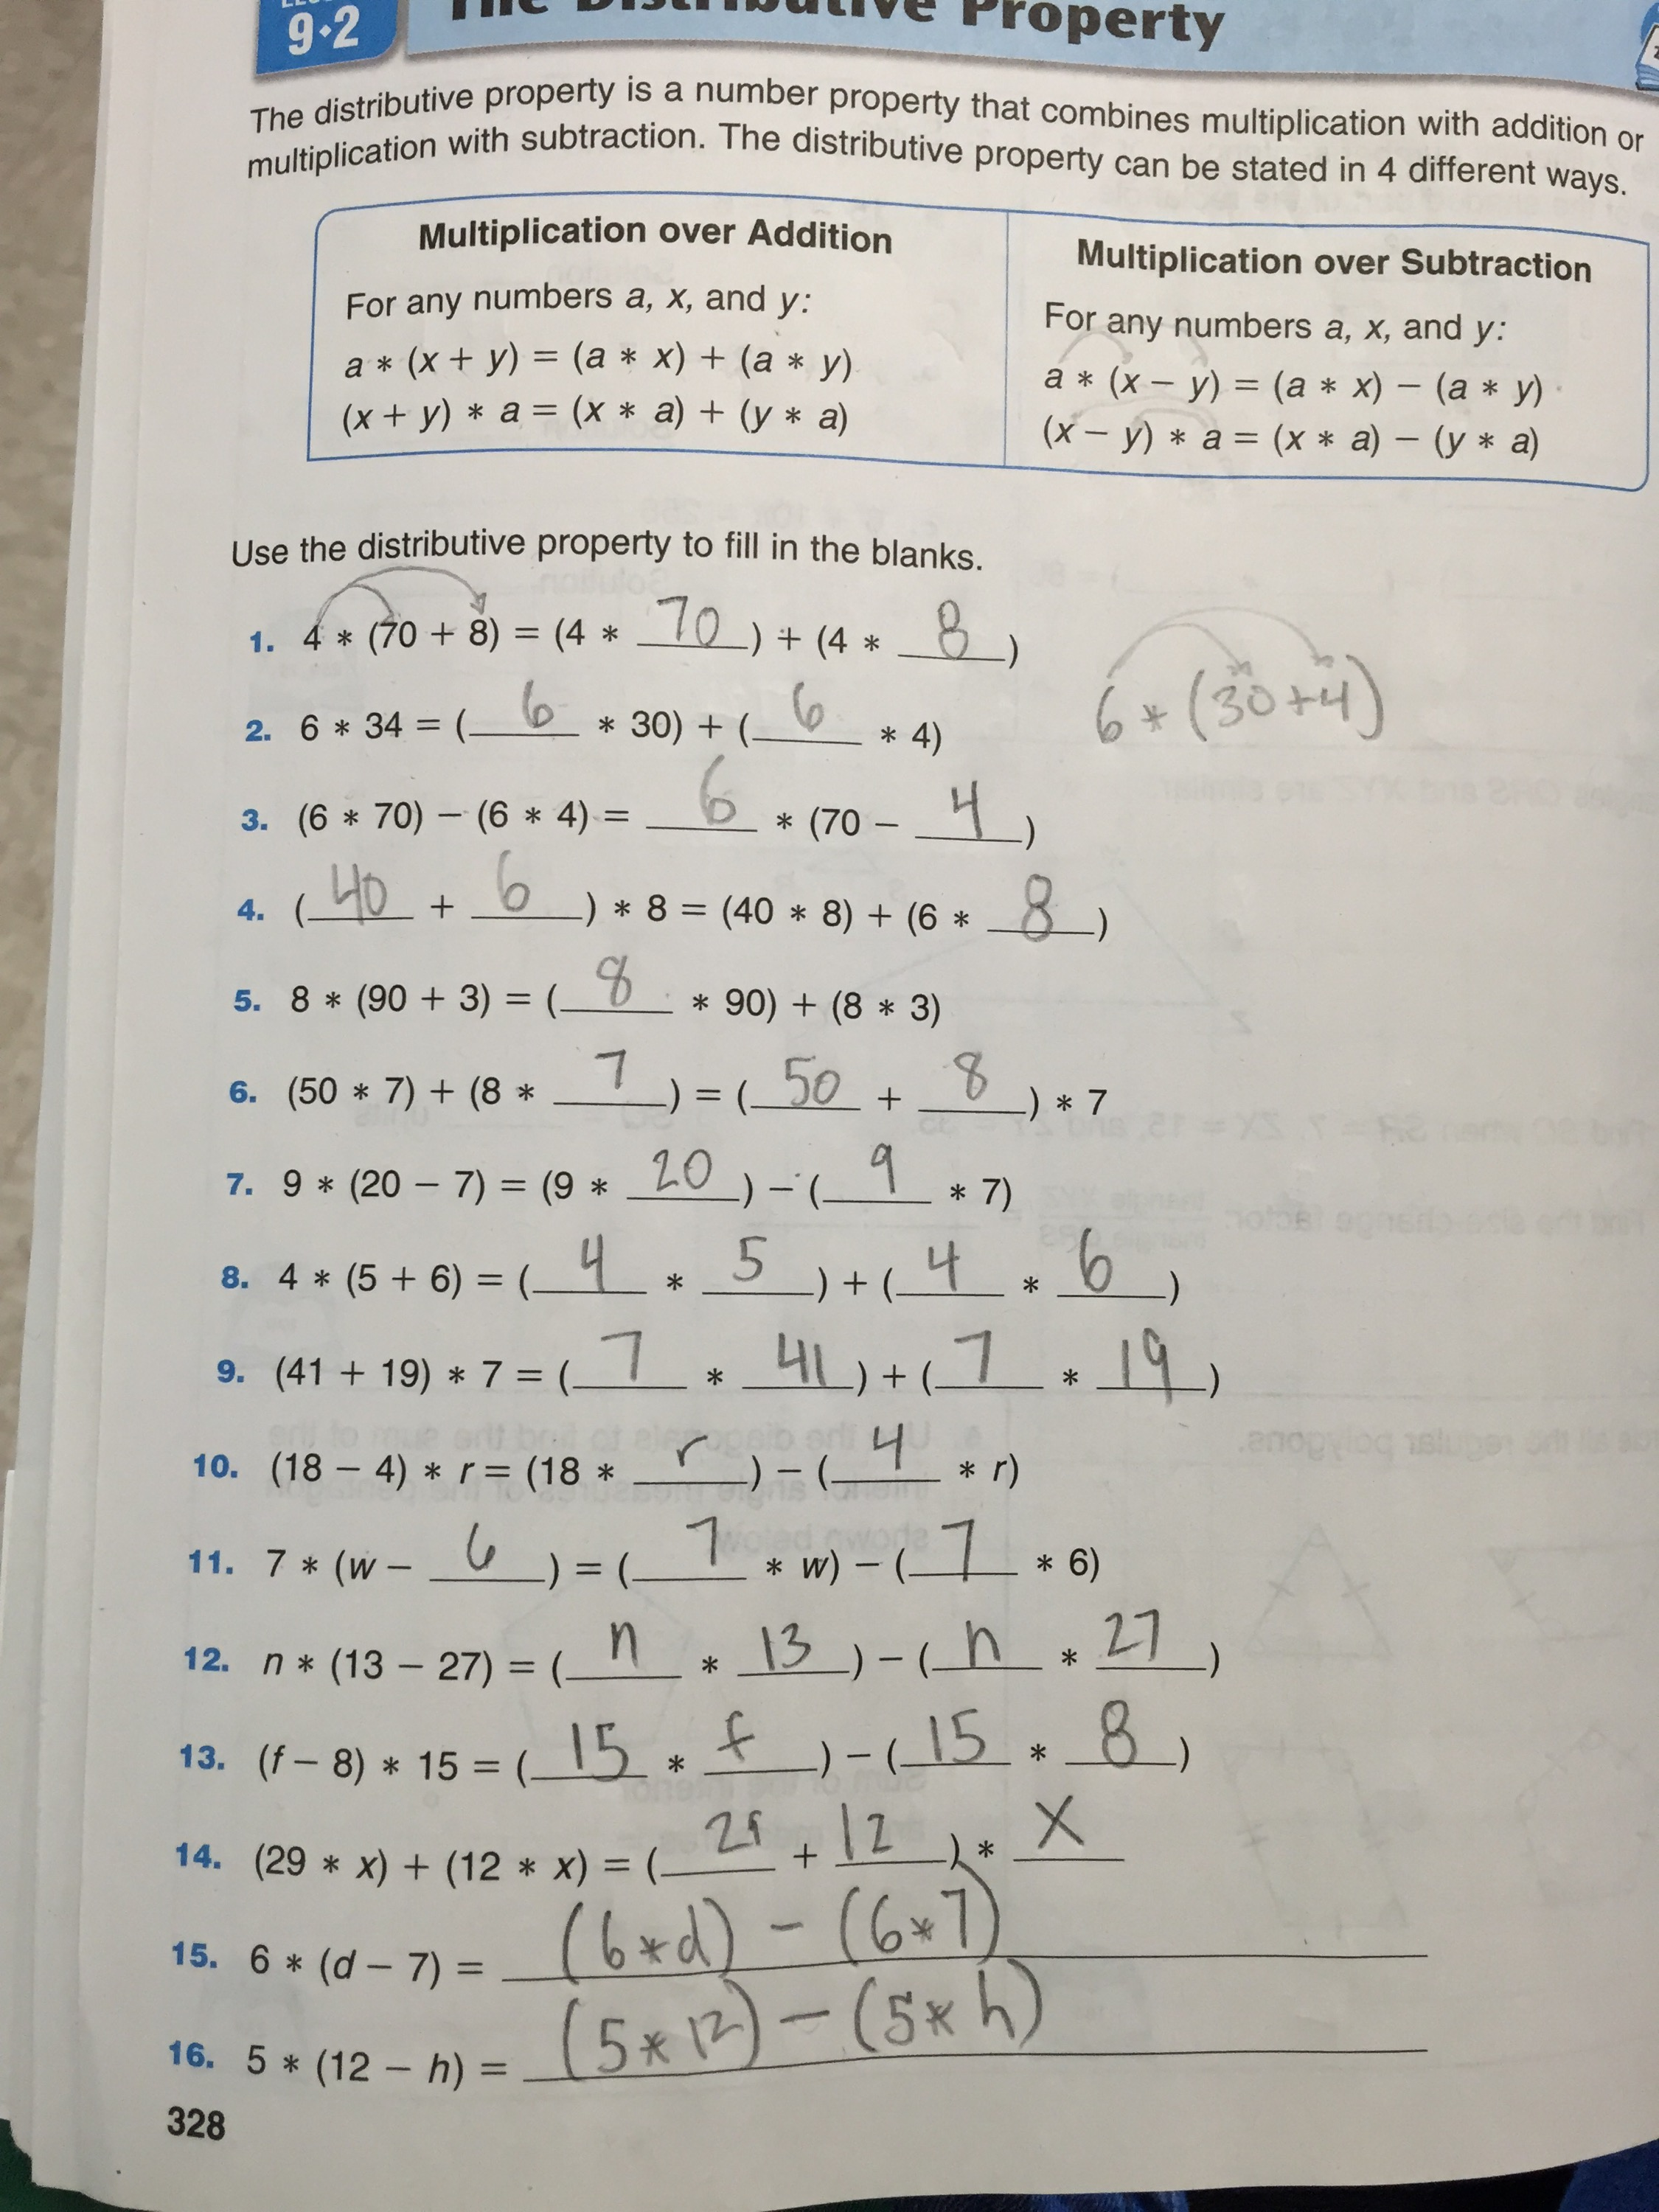 Weekly Math Homework 8th Grade Answers